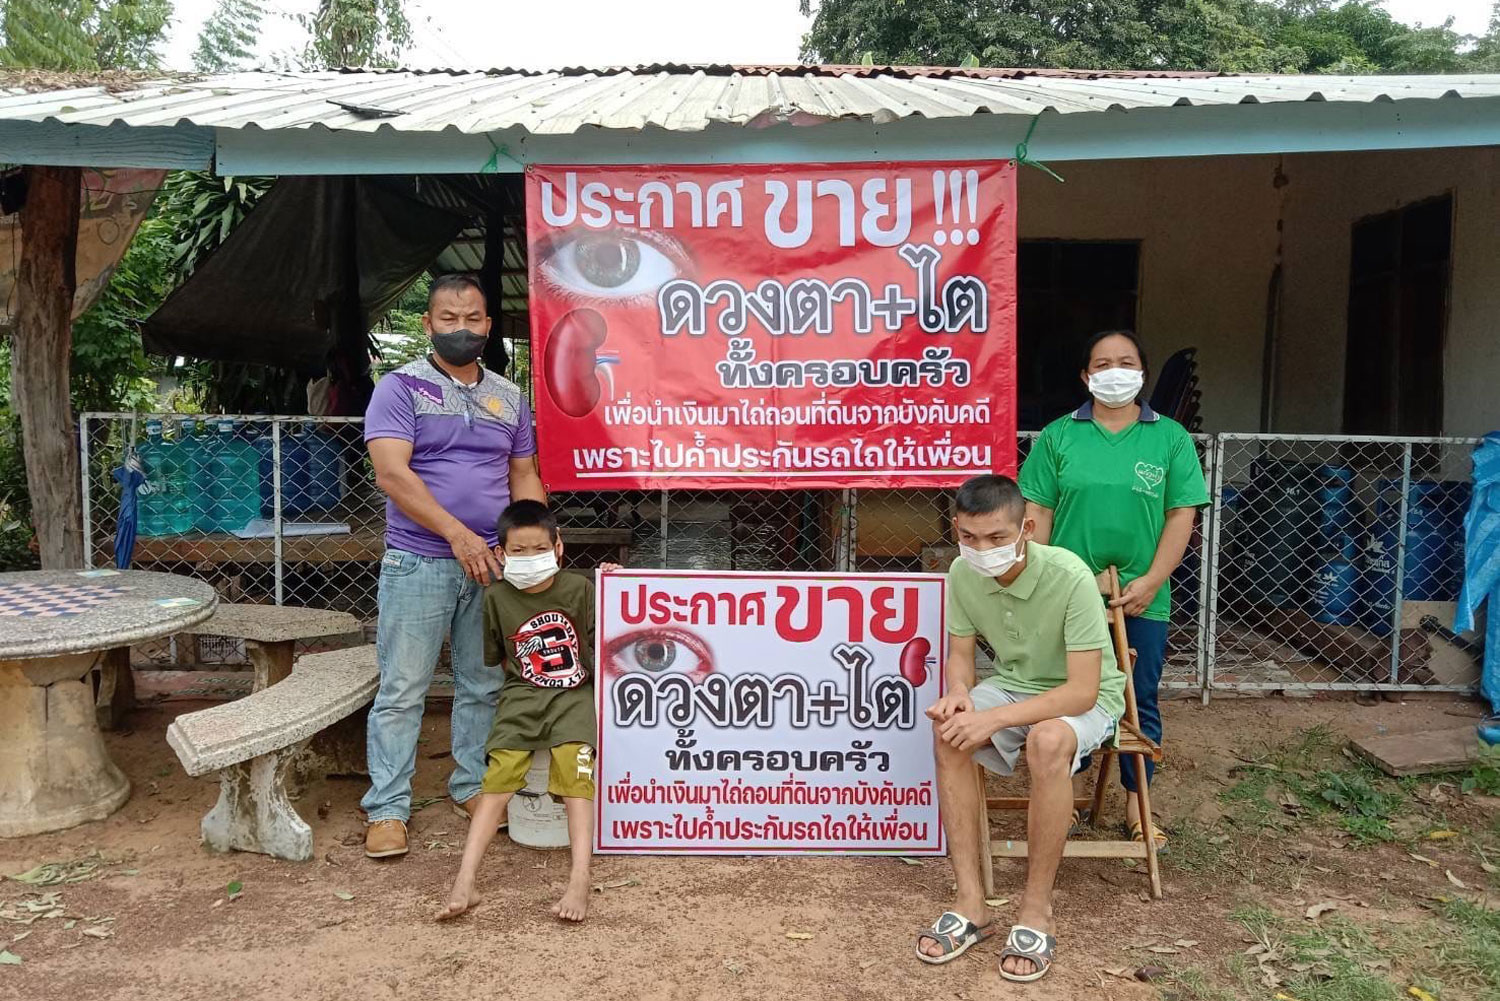 Rakthewa Khapim-udomlarp, 48, of Ubon Ratchathani's Khemarat district, his wife and their two sons, and the signs outside their home offering to sell their eyes and kidneys. (Photo: Good Governance Post Press Agency Facebook page)